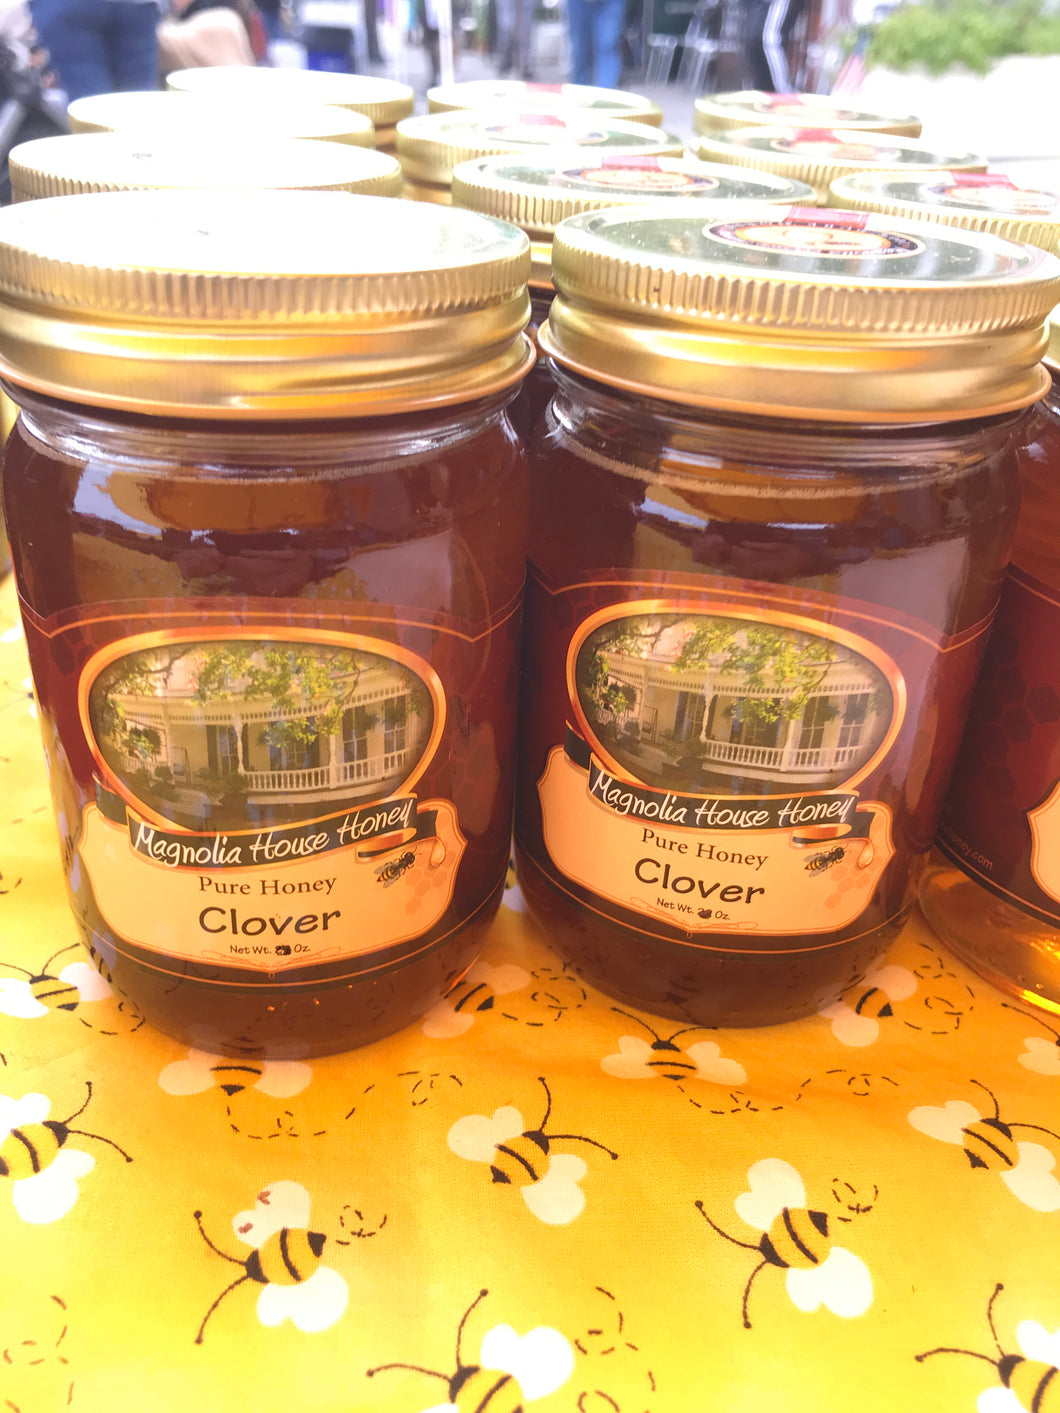 16oz Clover Honey - Magnolia House Honey